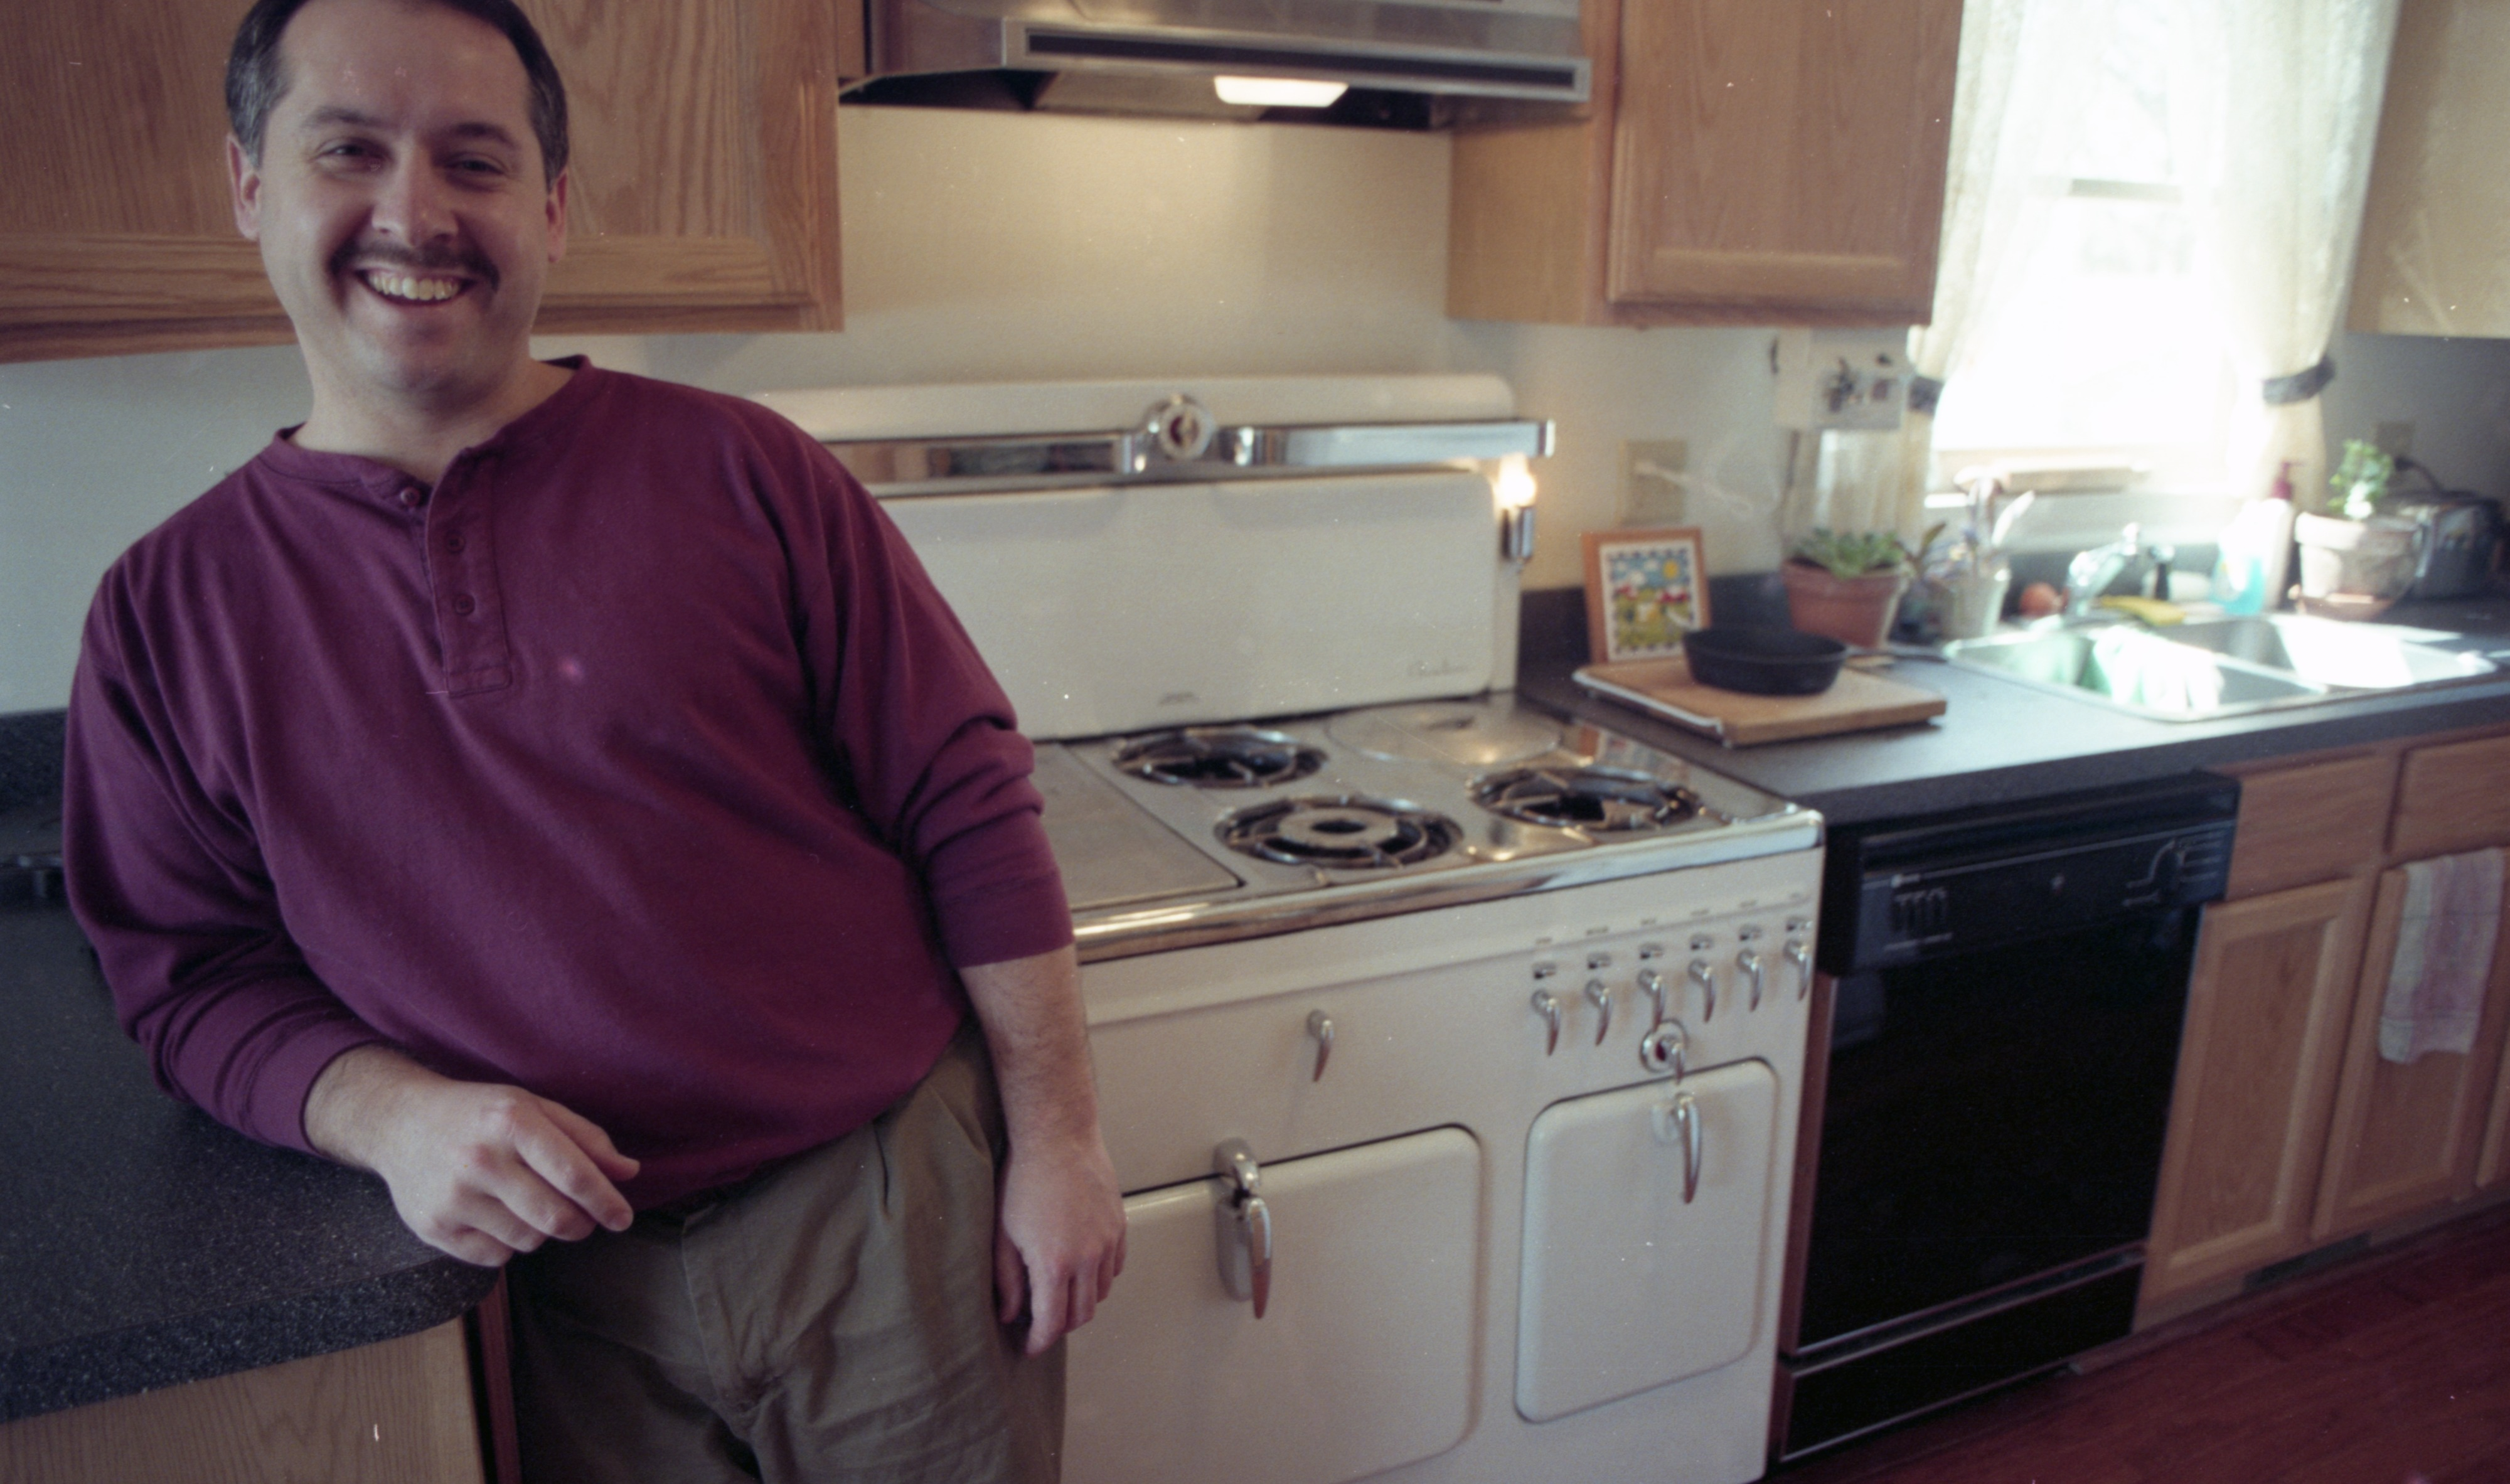 Dave Zerweck & His Restored 1939 Chambers Kitchen Range, March 1996 image